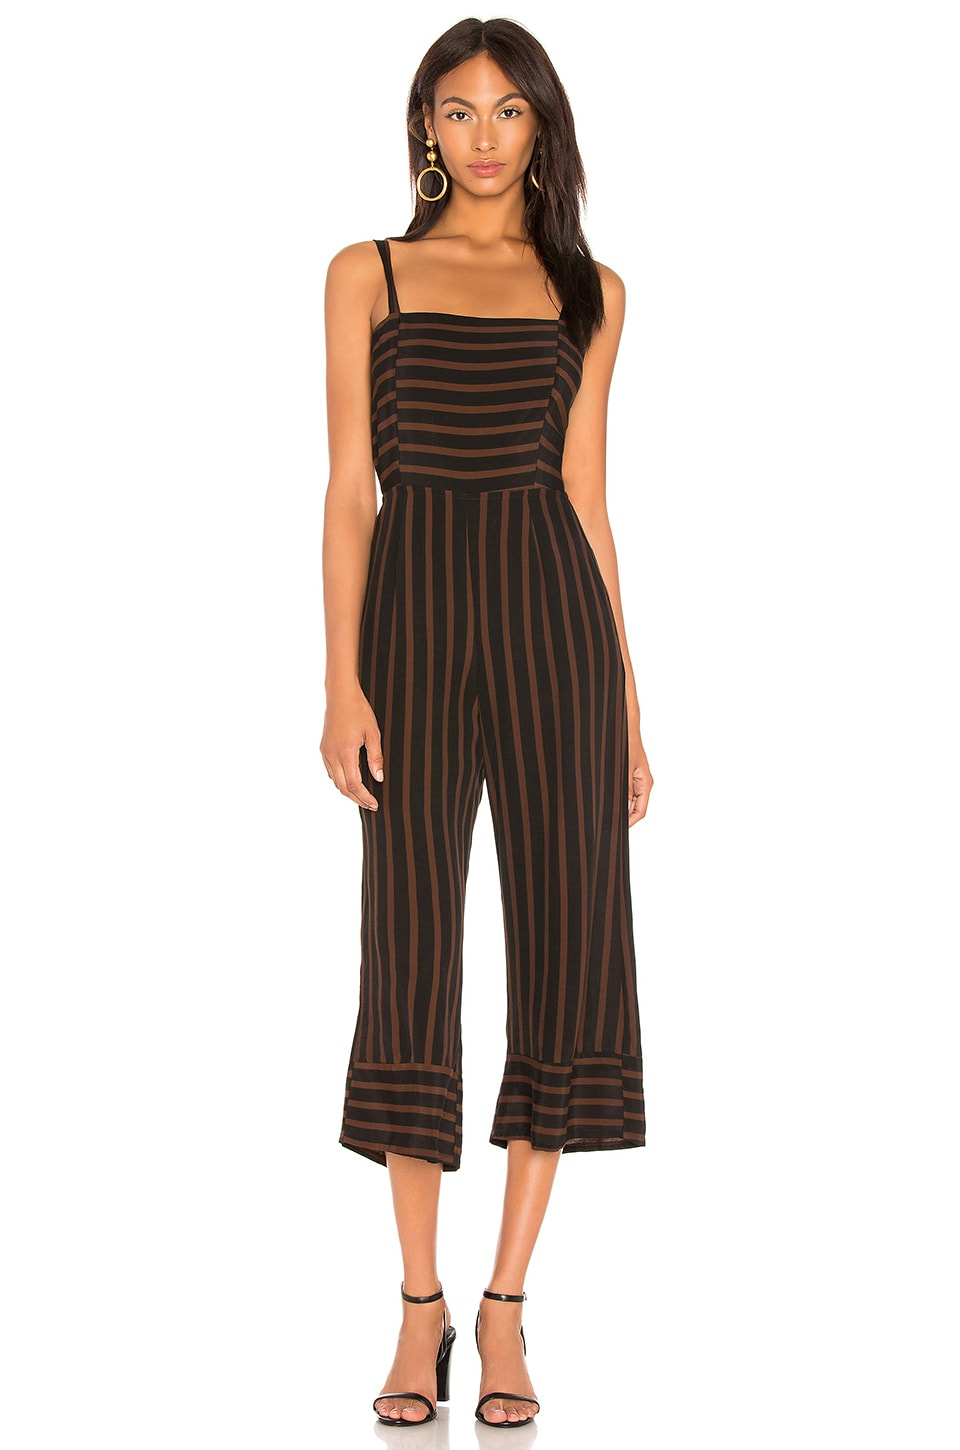 FAITHFULL THE BRAND Guanabo Tie Back Stripe Jumpsuit in Brown